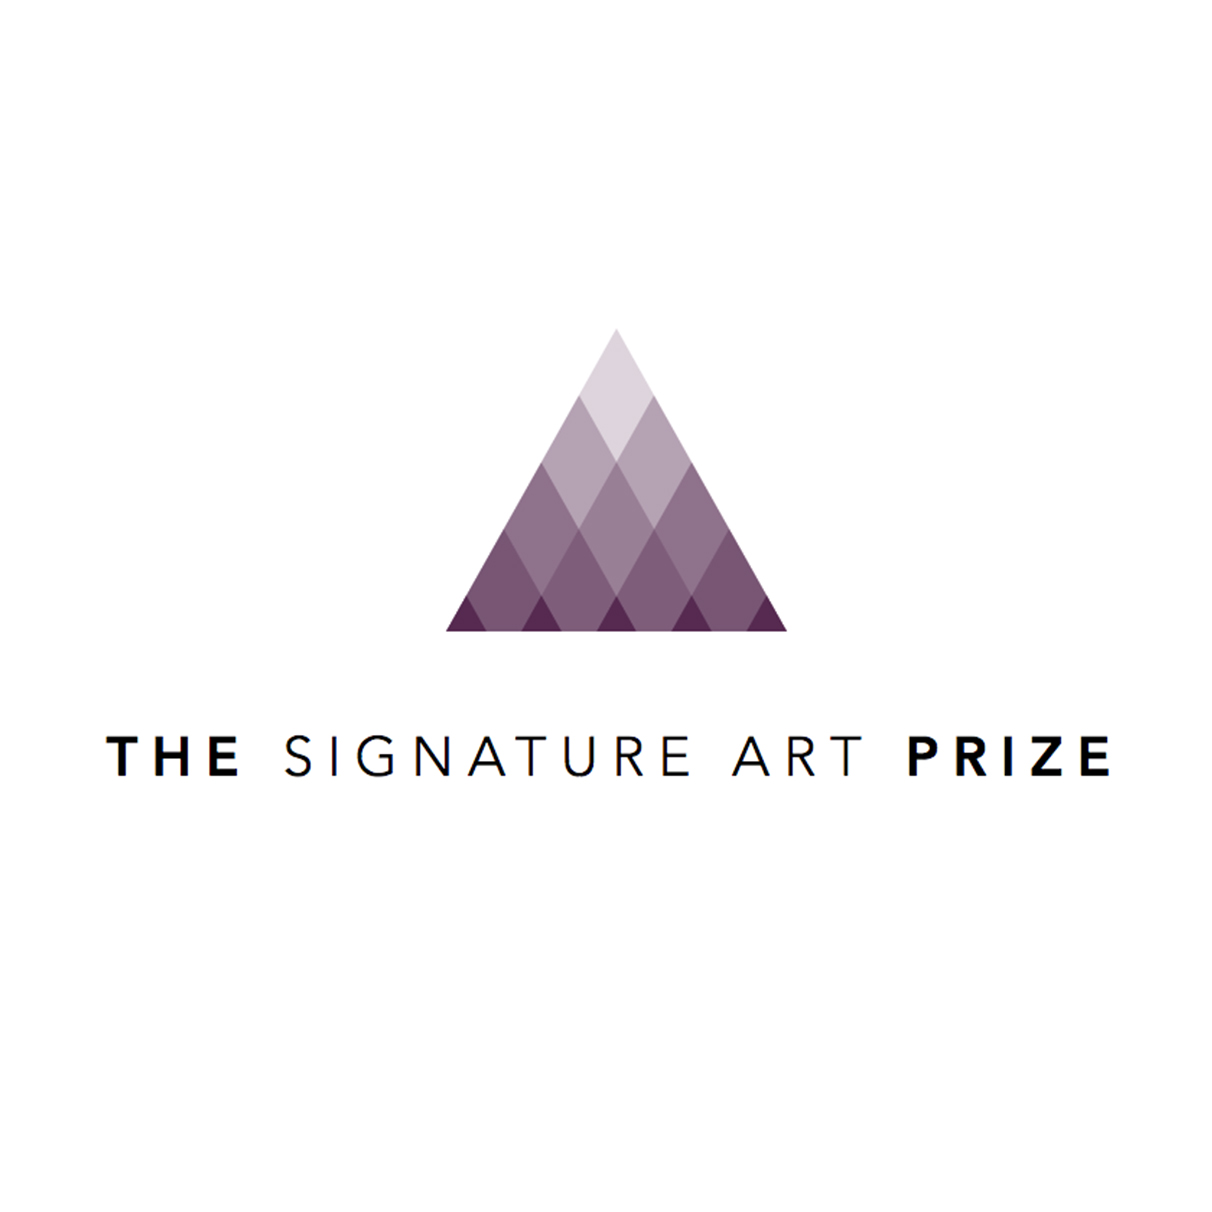 thesignatureprize.jpg